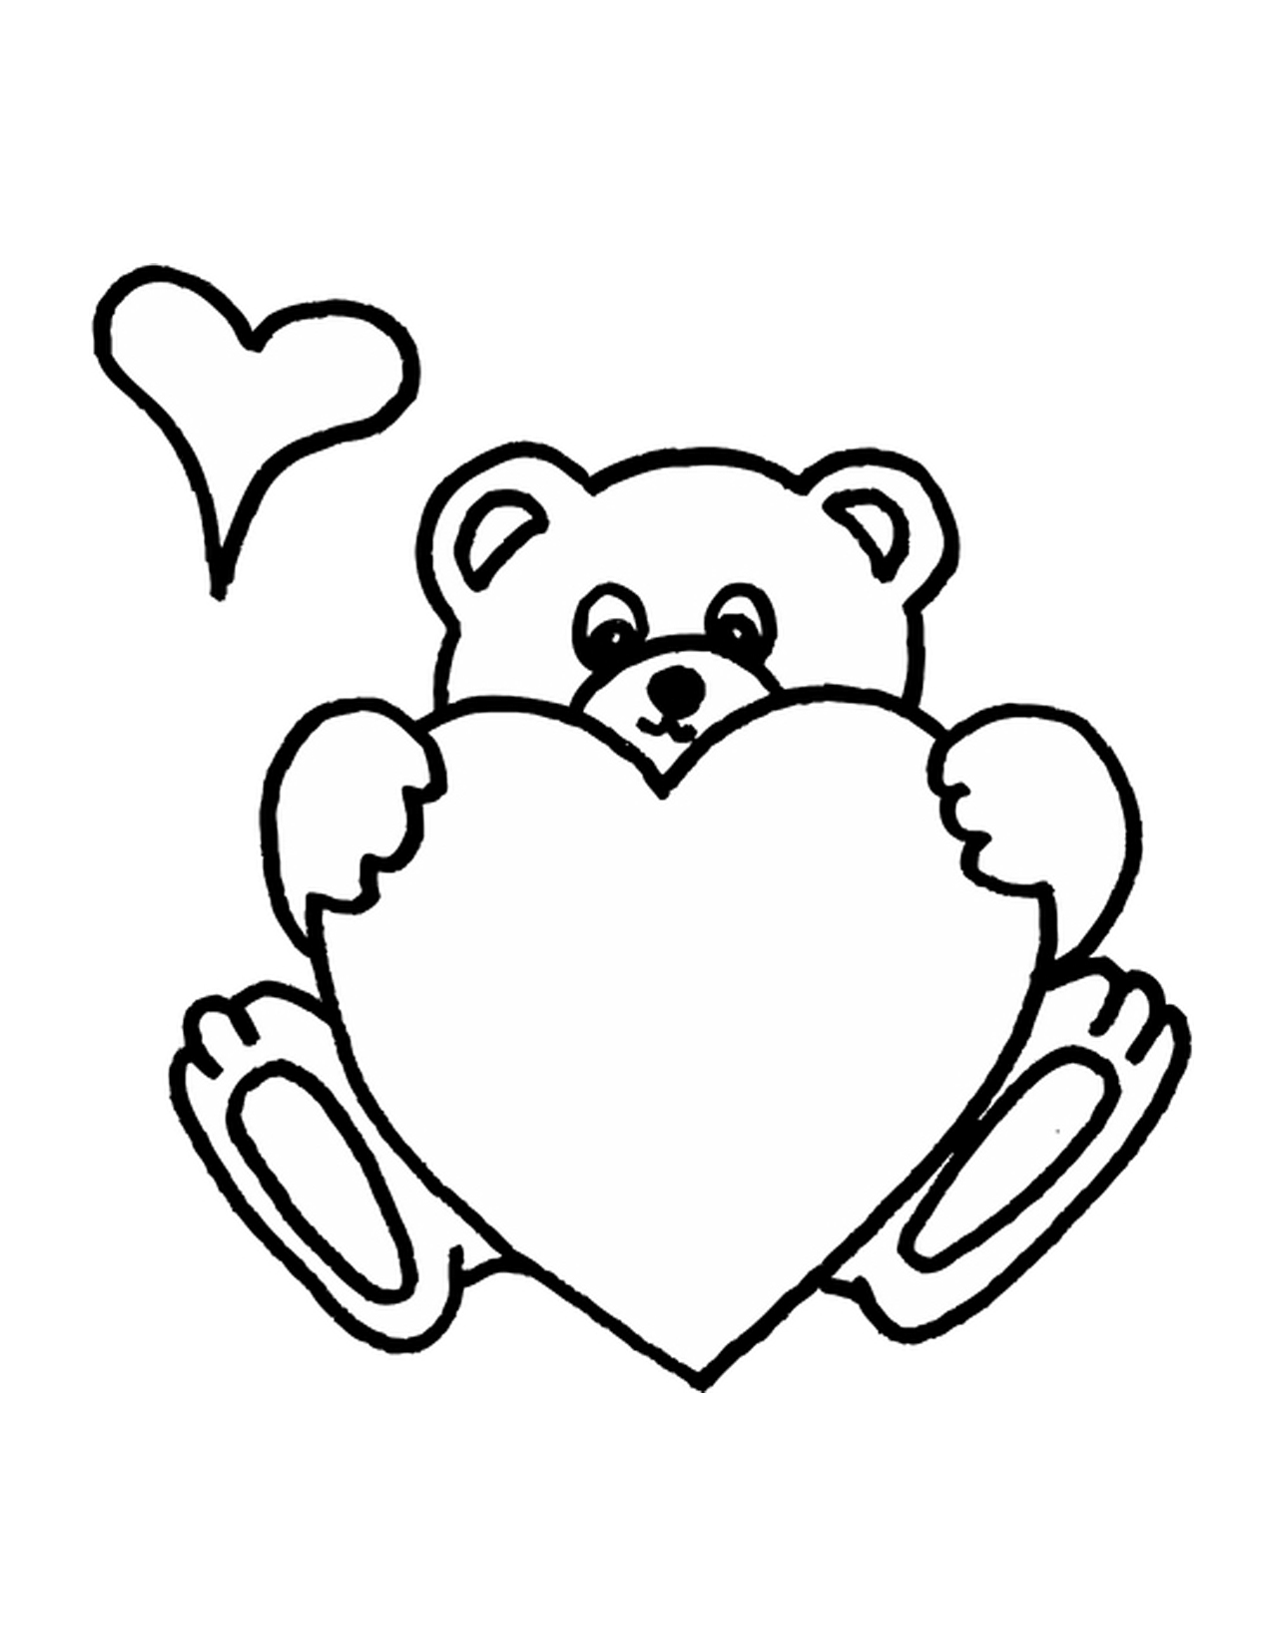 teddy bear heart coloring pages - photo#8